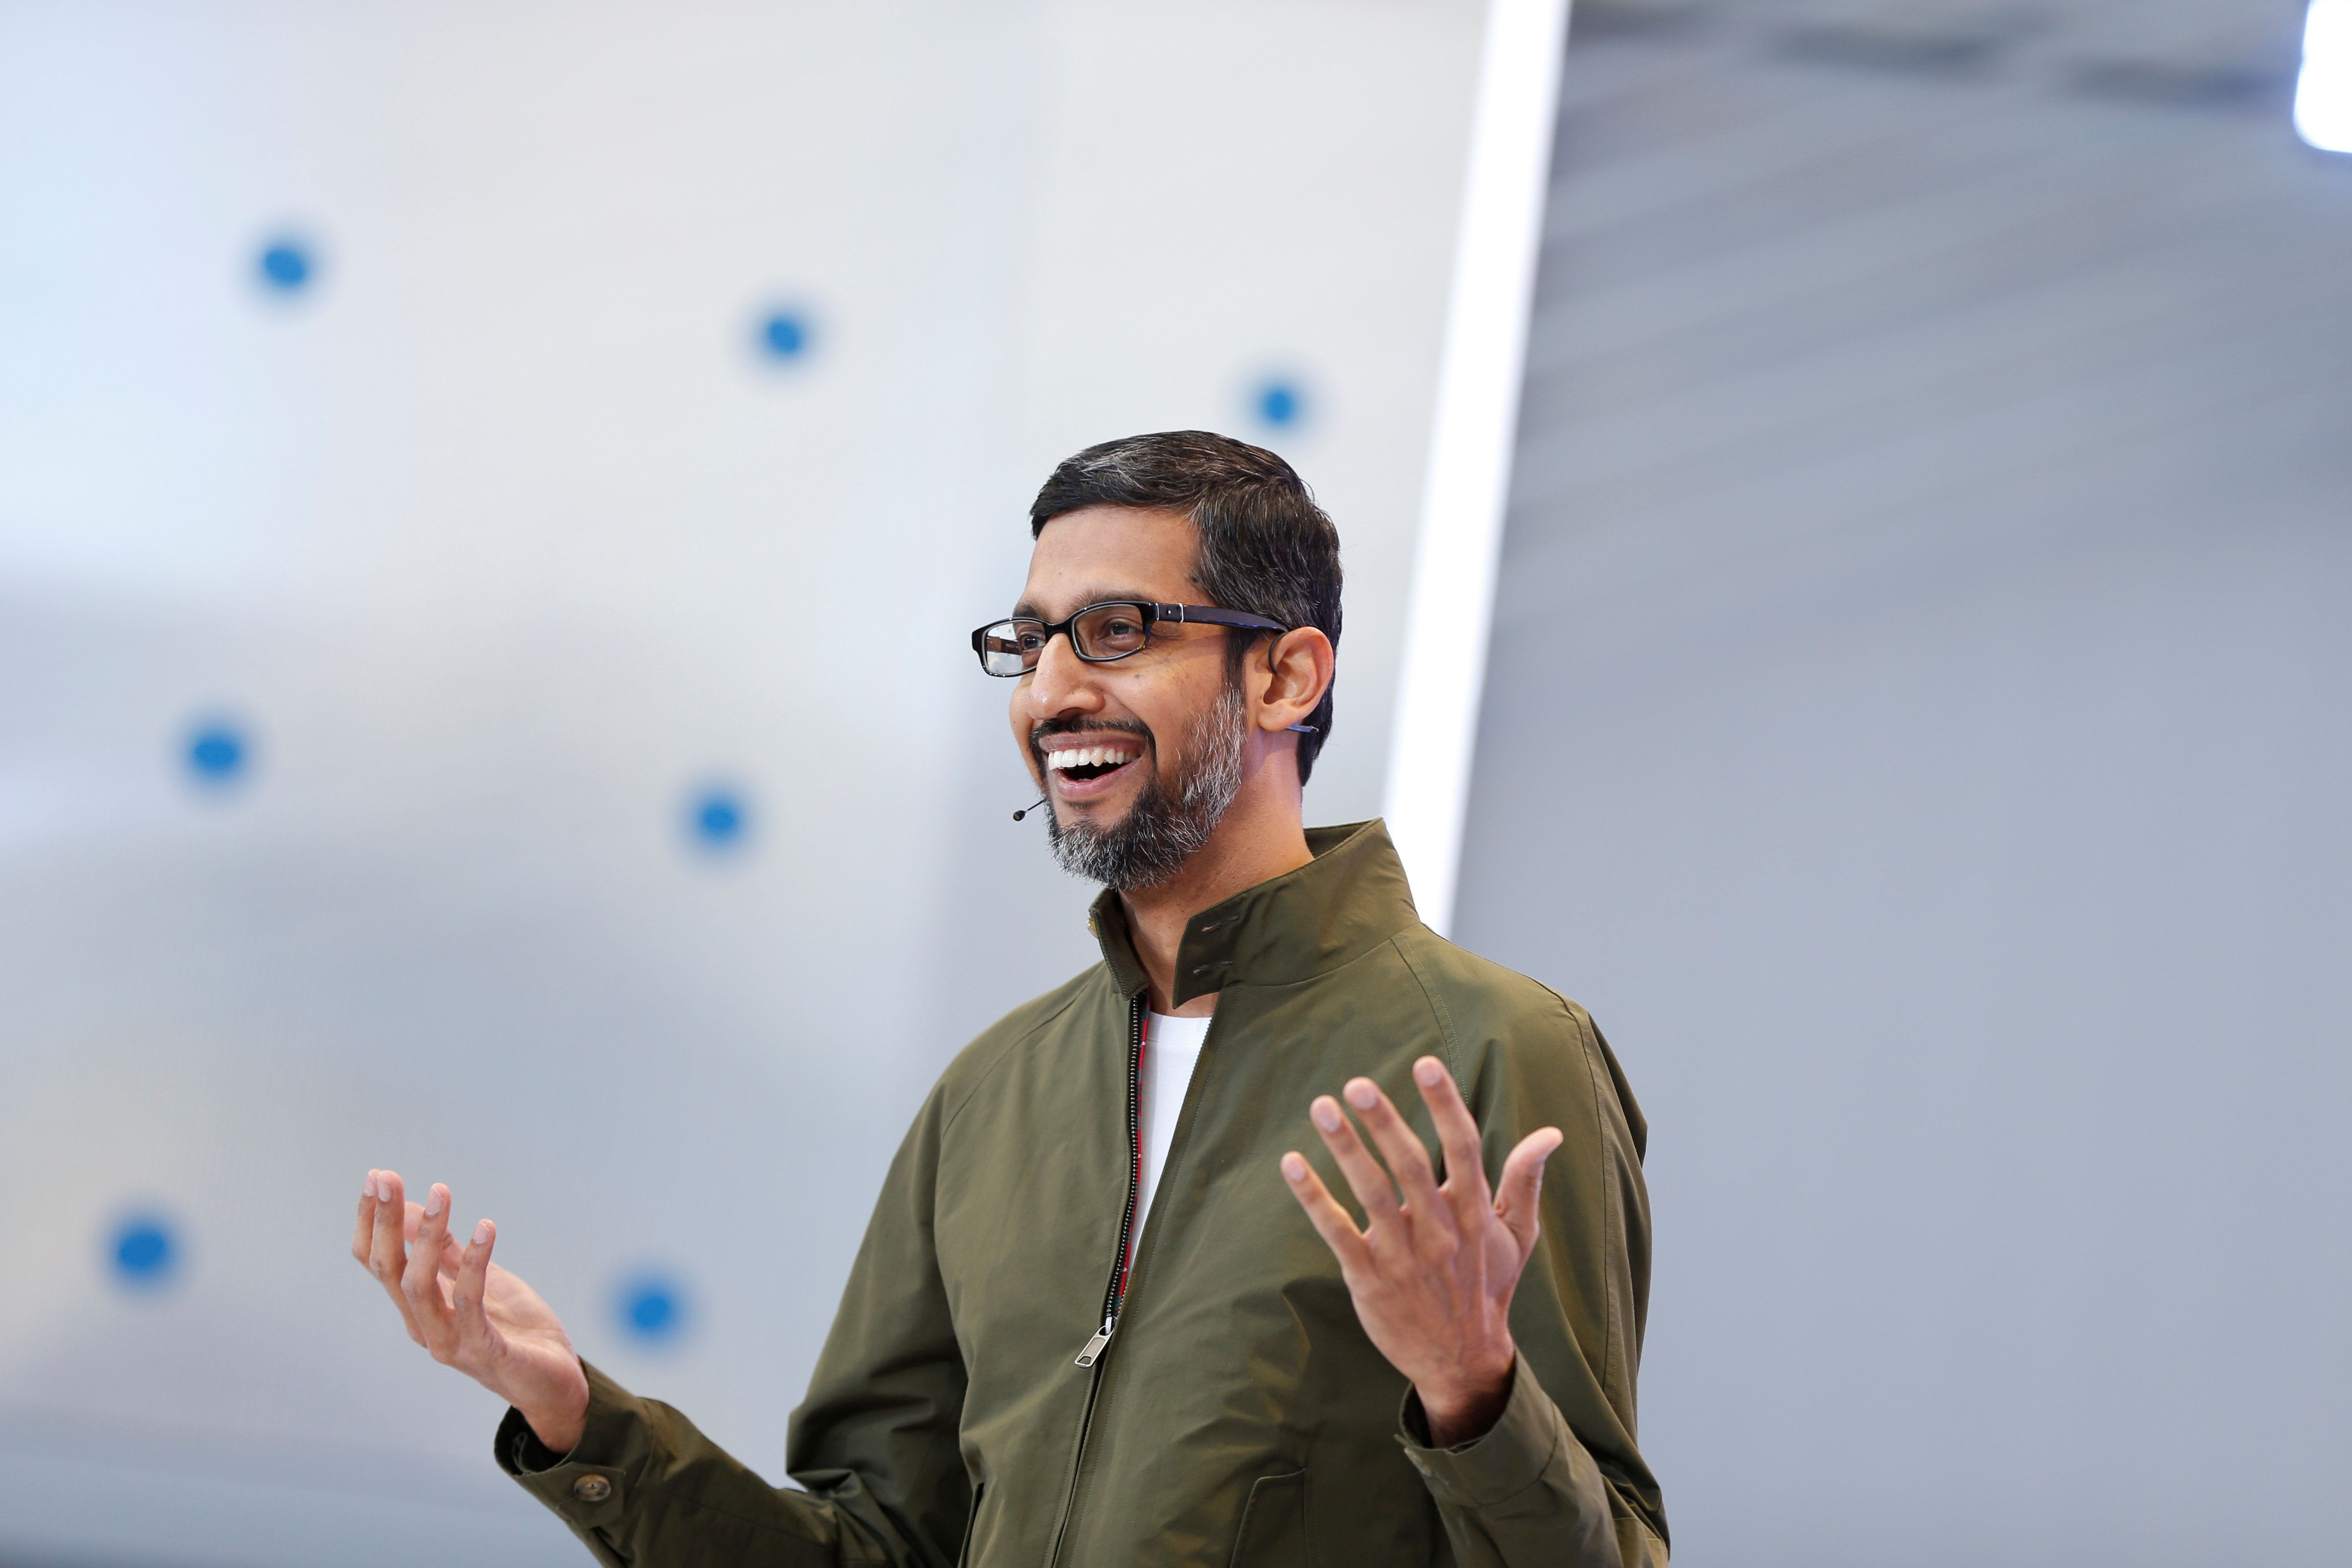 Google's AI Assistant Can Now Make Phone Calls For